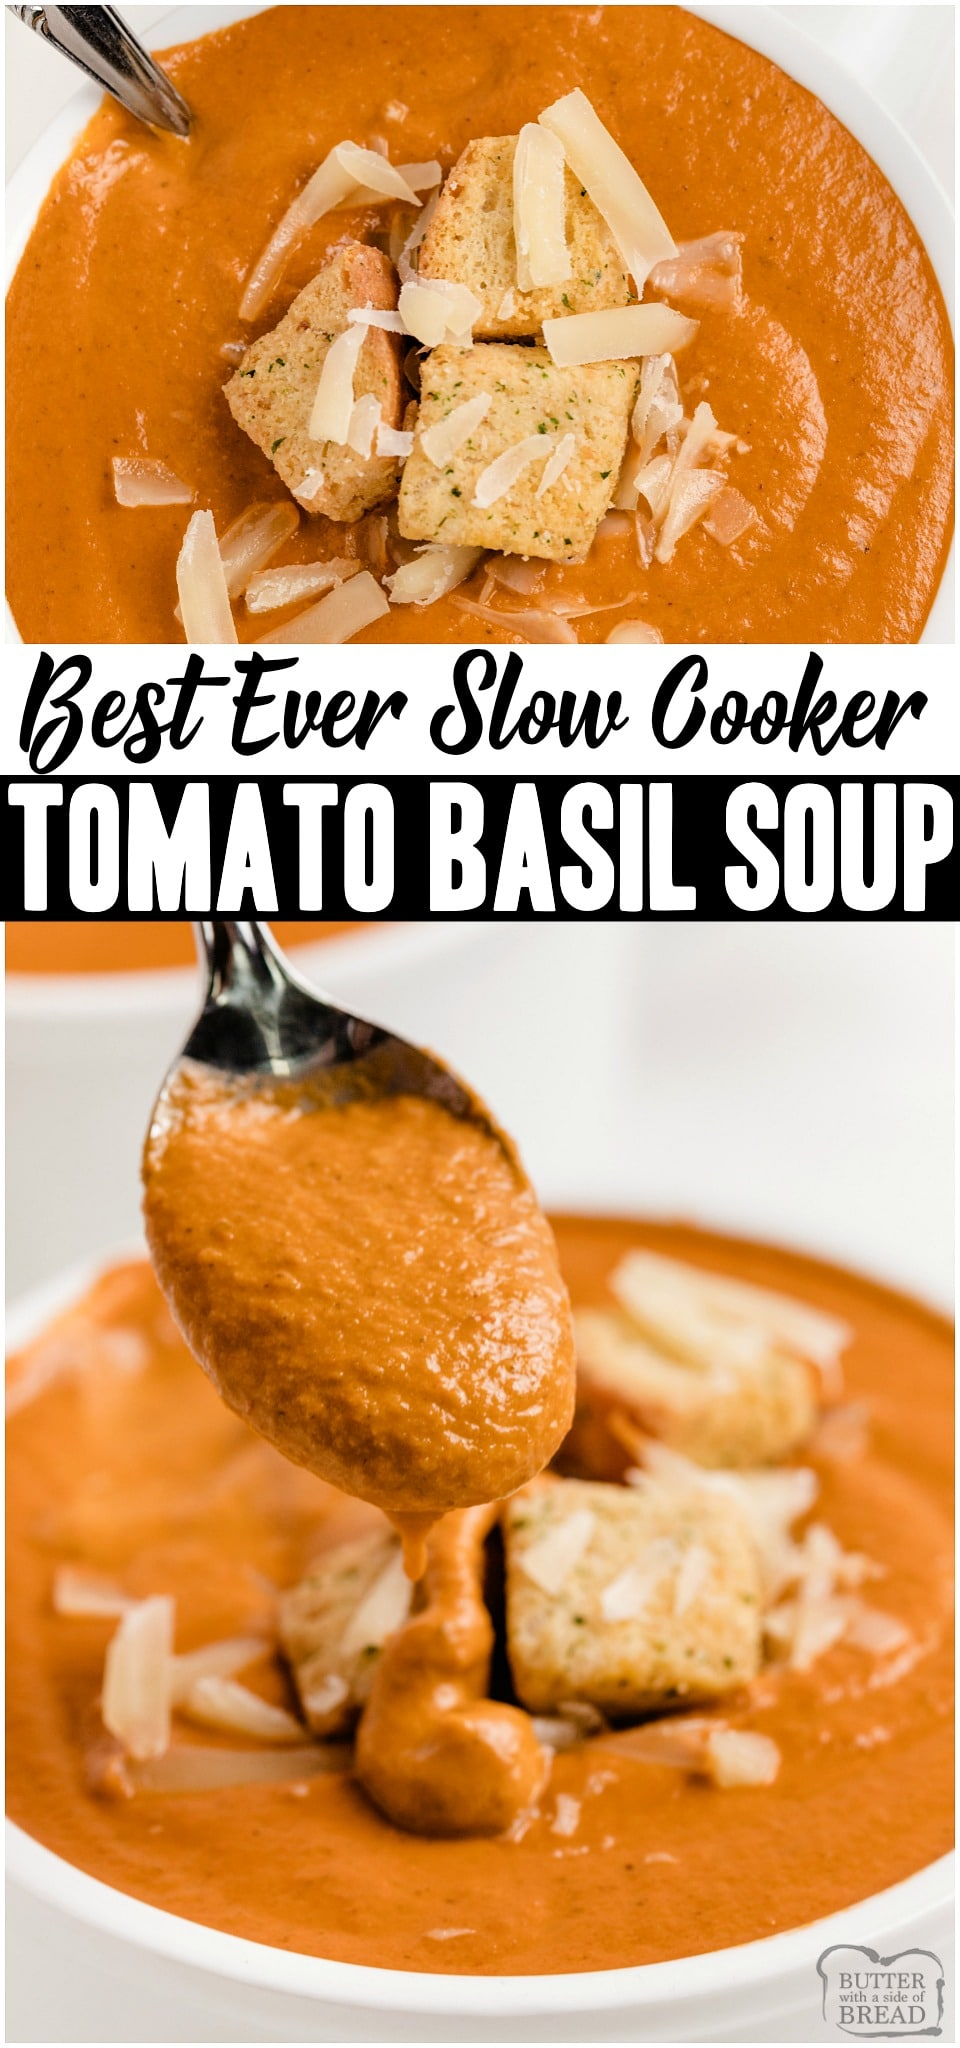 Tomato Basil Soup made with ripe tomatoes & pesto sauce blended until smooth & creamy & served topped with cheese & croutons! It's just like the Tomato Basil Soup recipe served at Cafe Zupas!